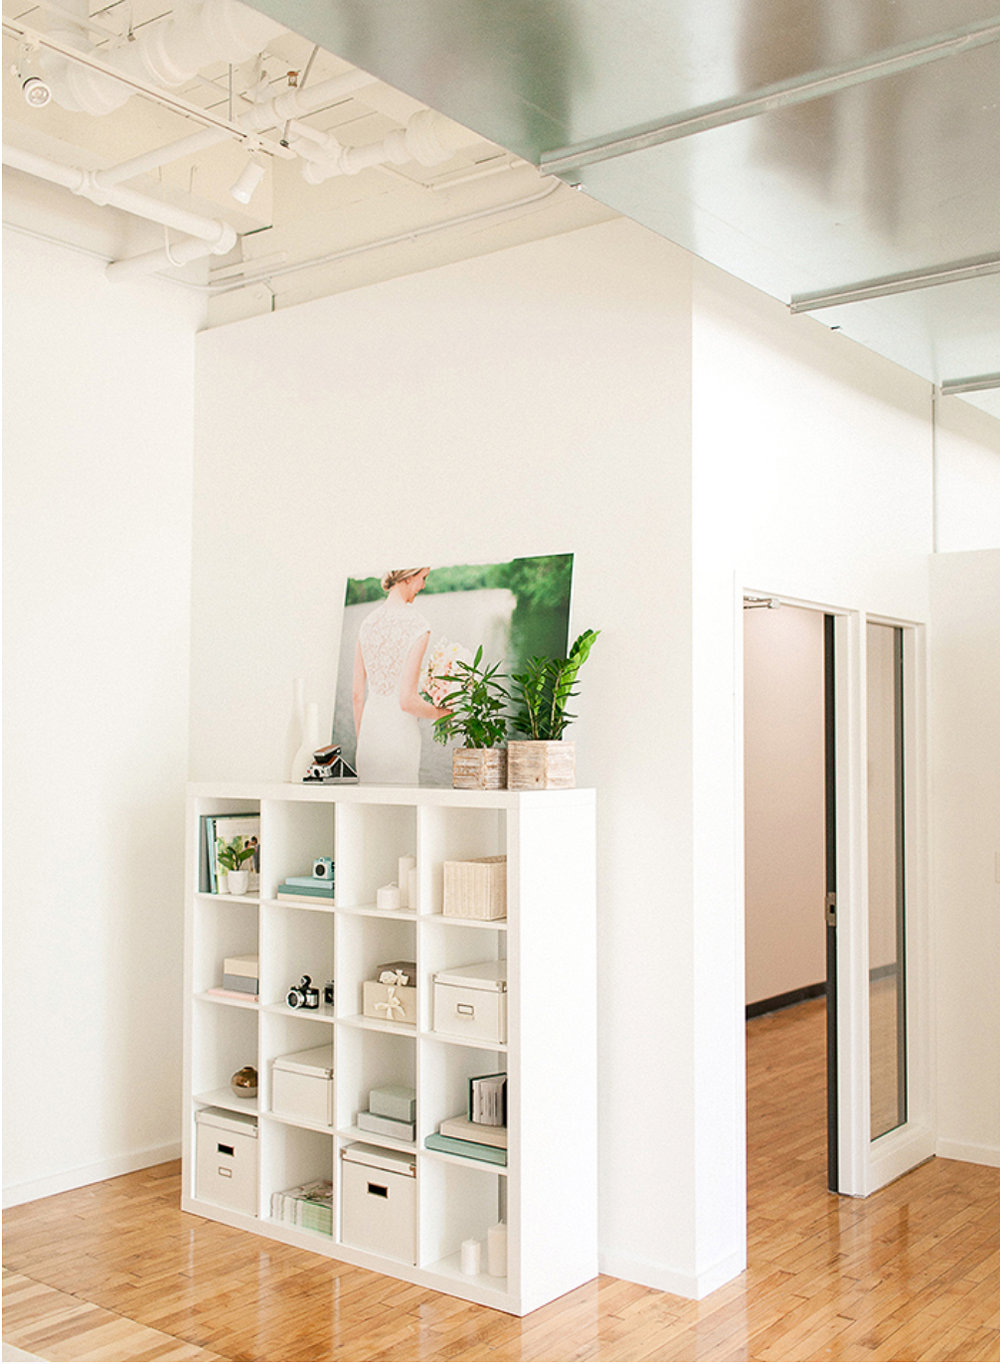 Bright white walls throughout.